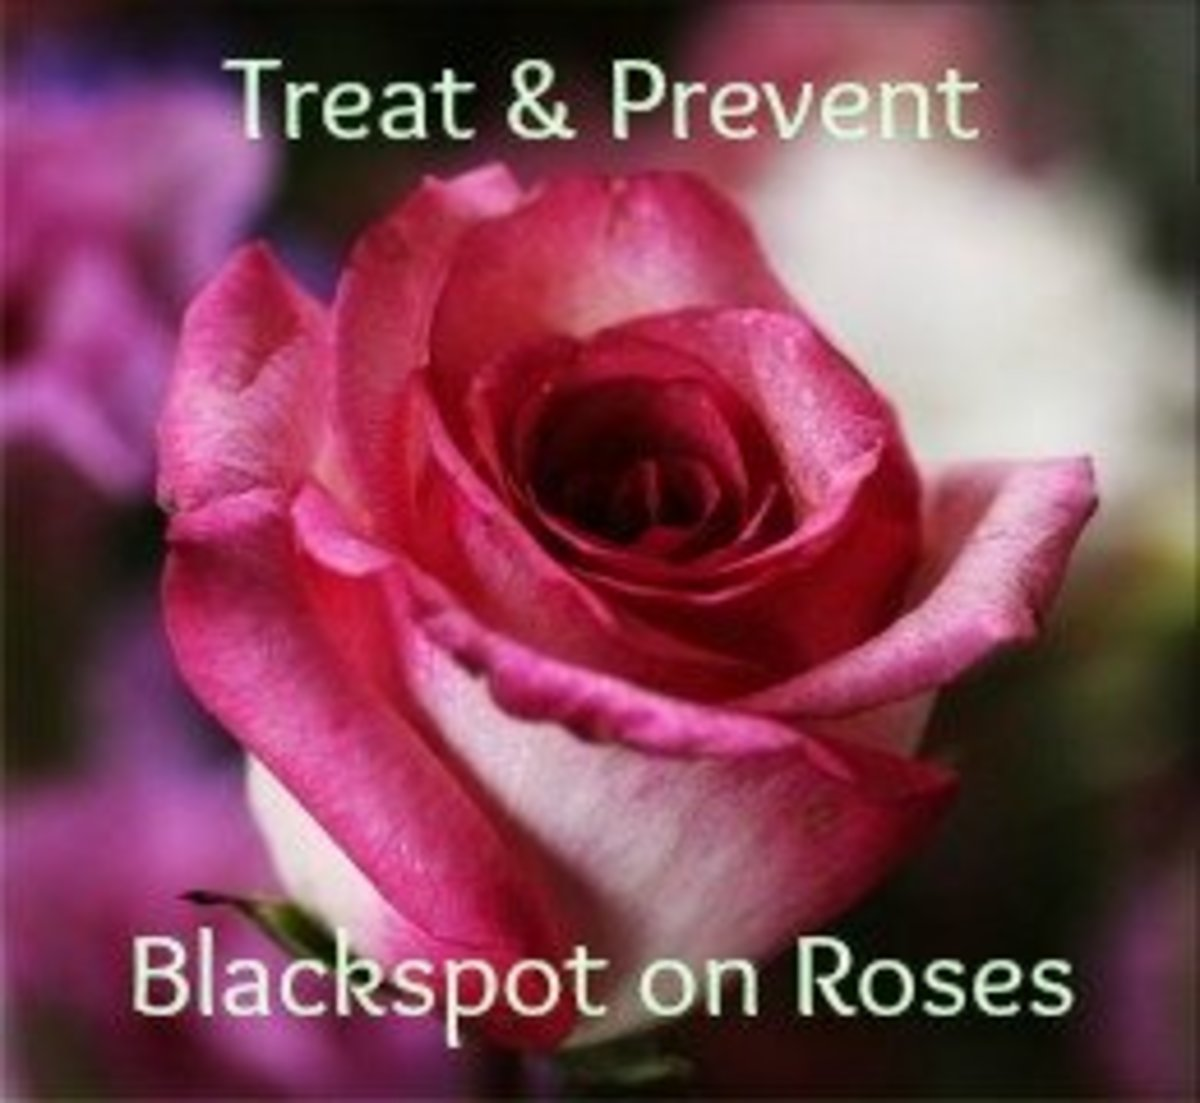 How to Treat and Prevent Black Spot Disease on Roses